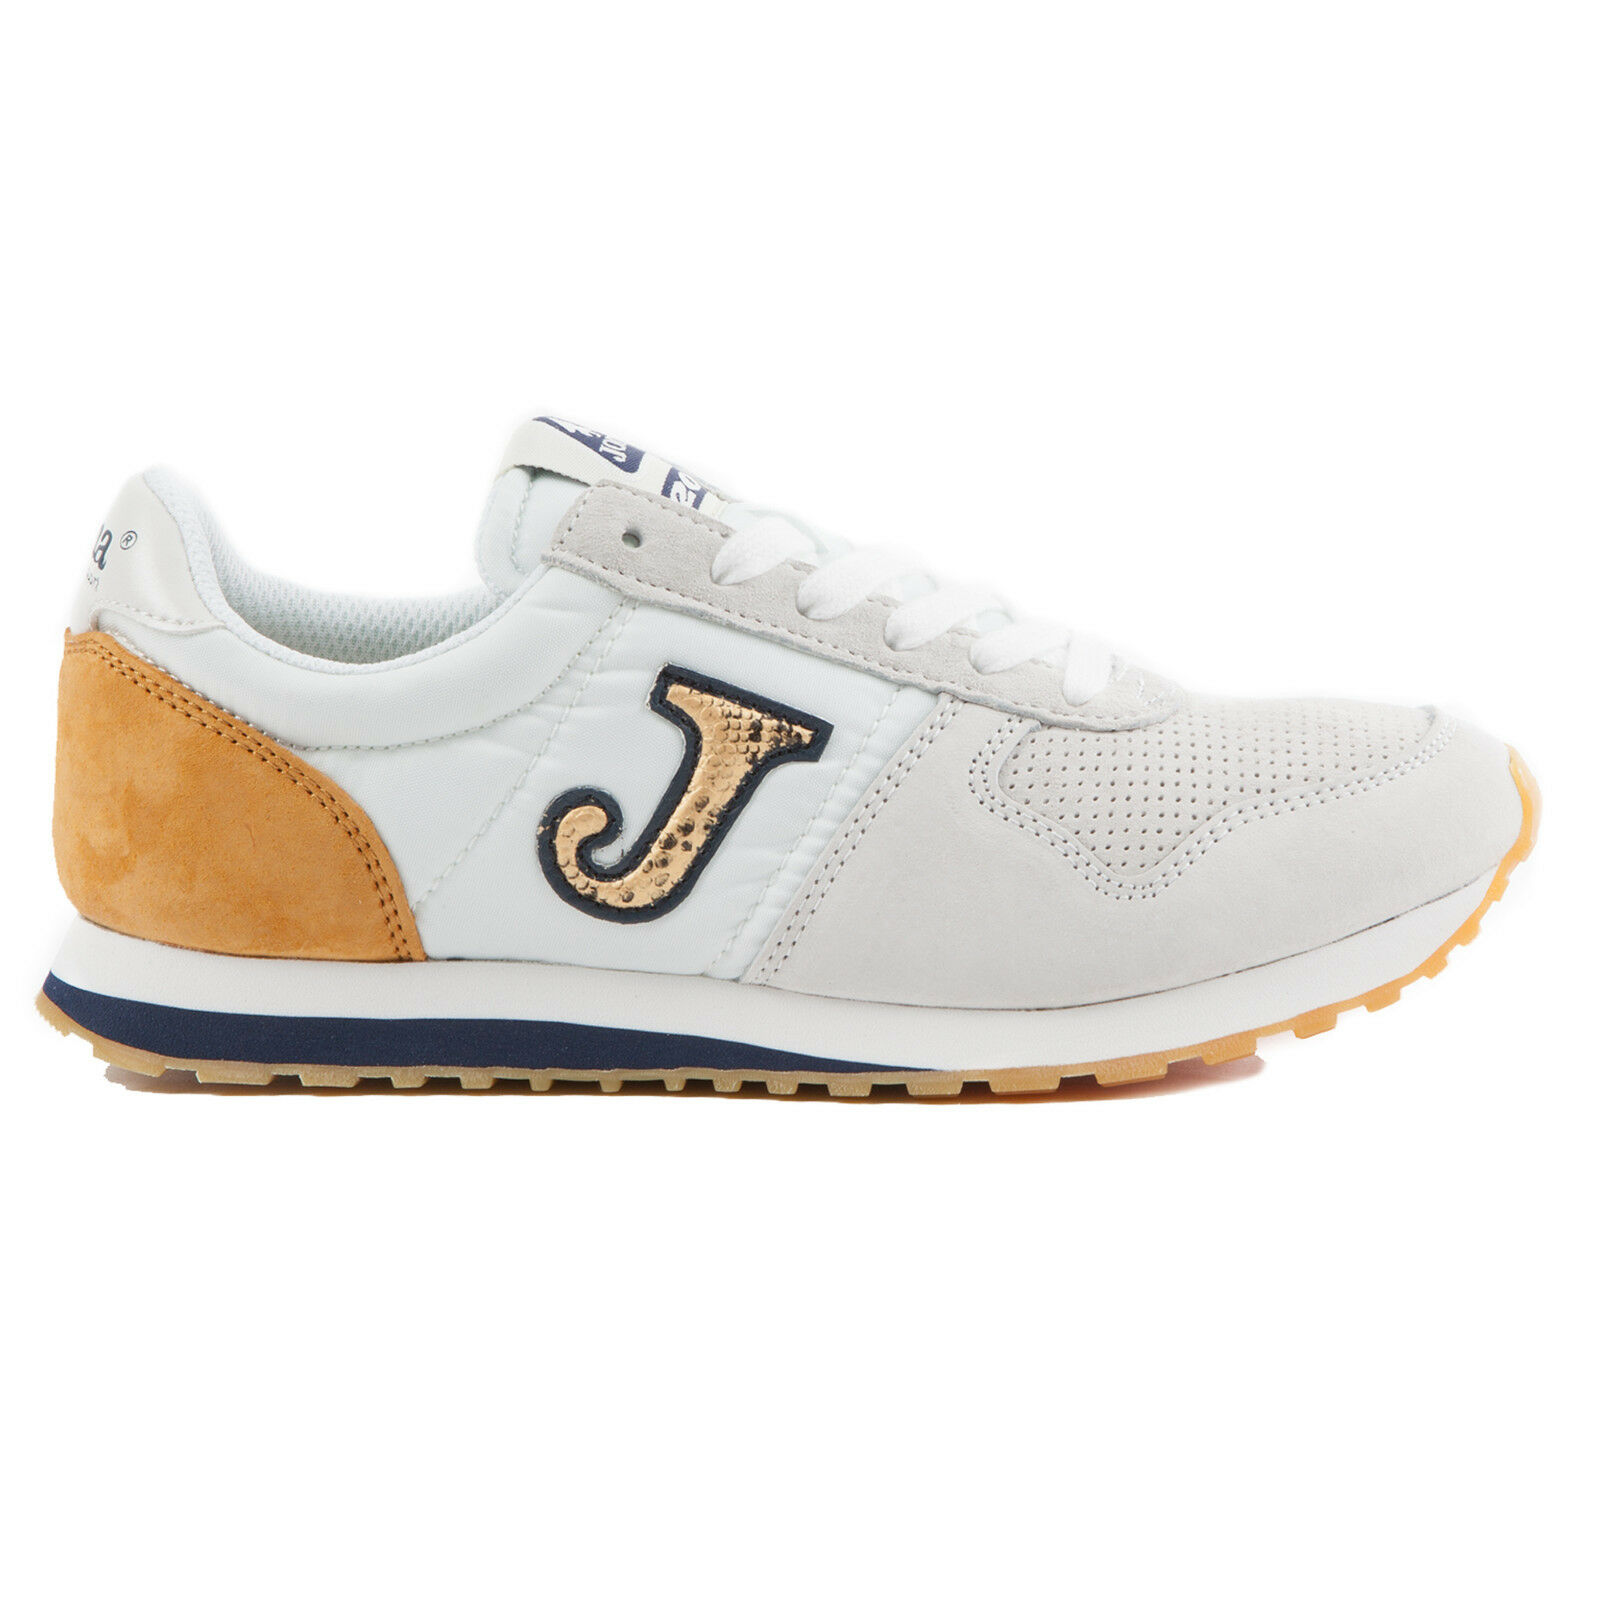 SNEAKERS EUR DONNA JOMA C.200 EUR SNEAKERS 38,87   PicClick FR 01e789